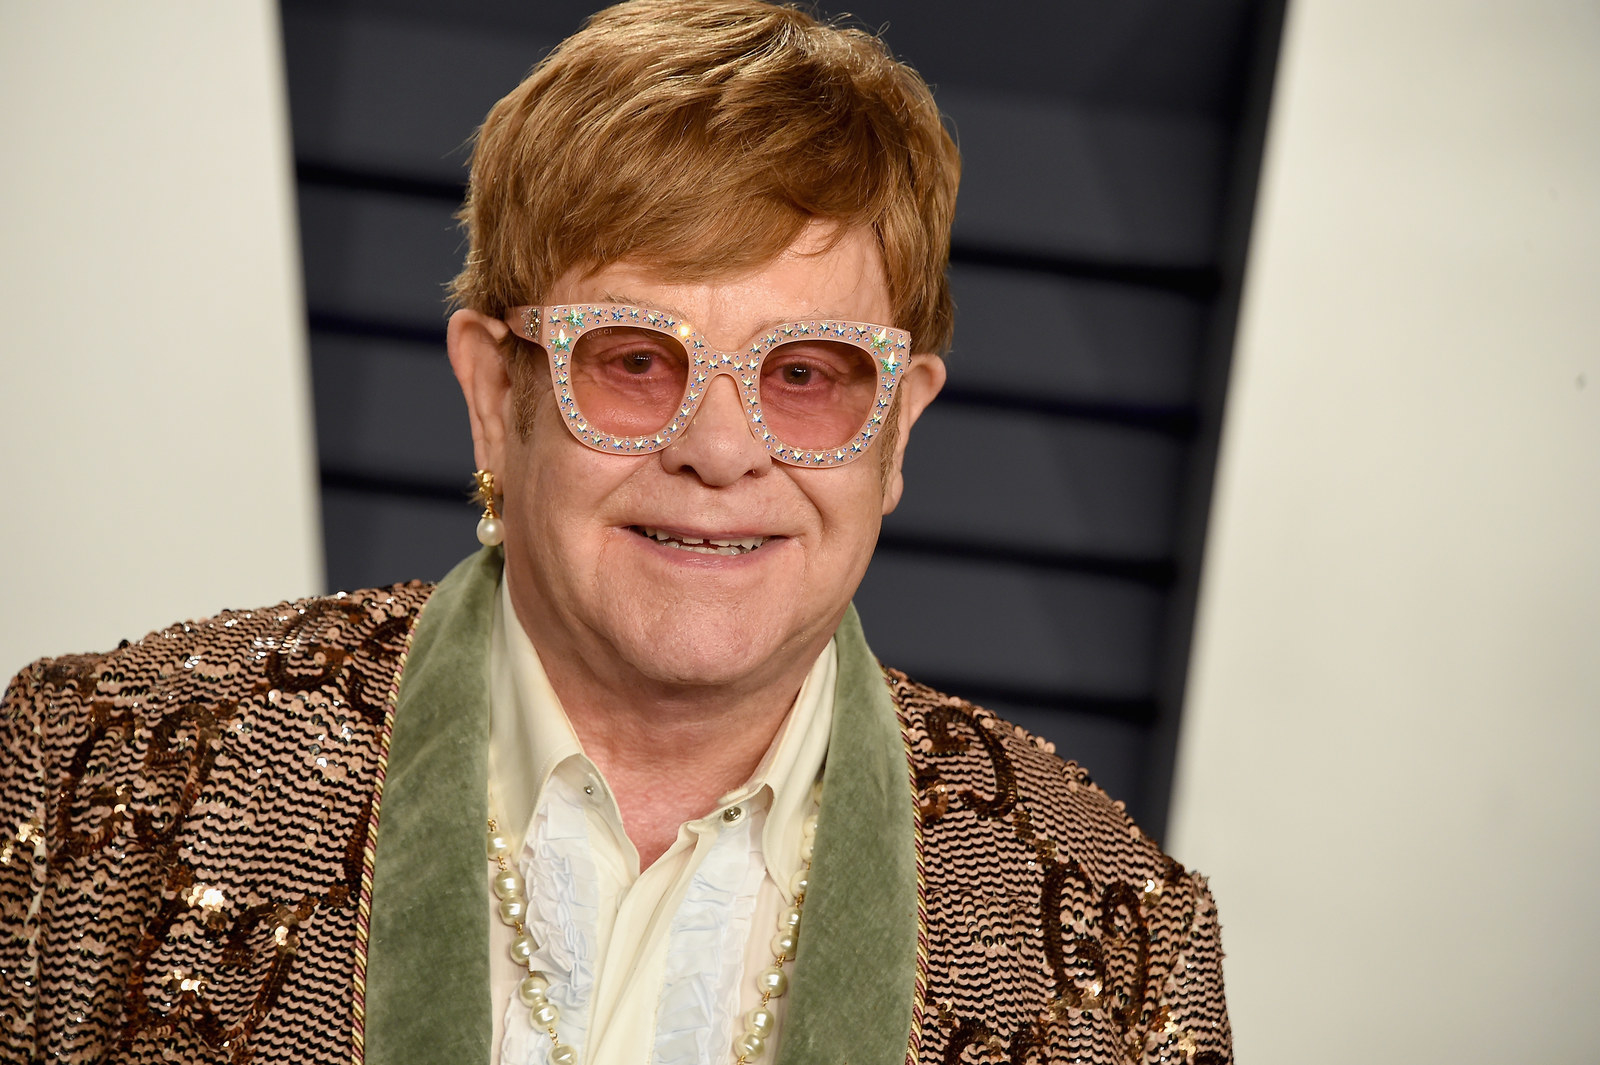 On March 25, Elton John will be celebrating his 72nd birthday.